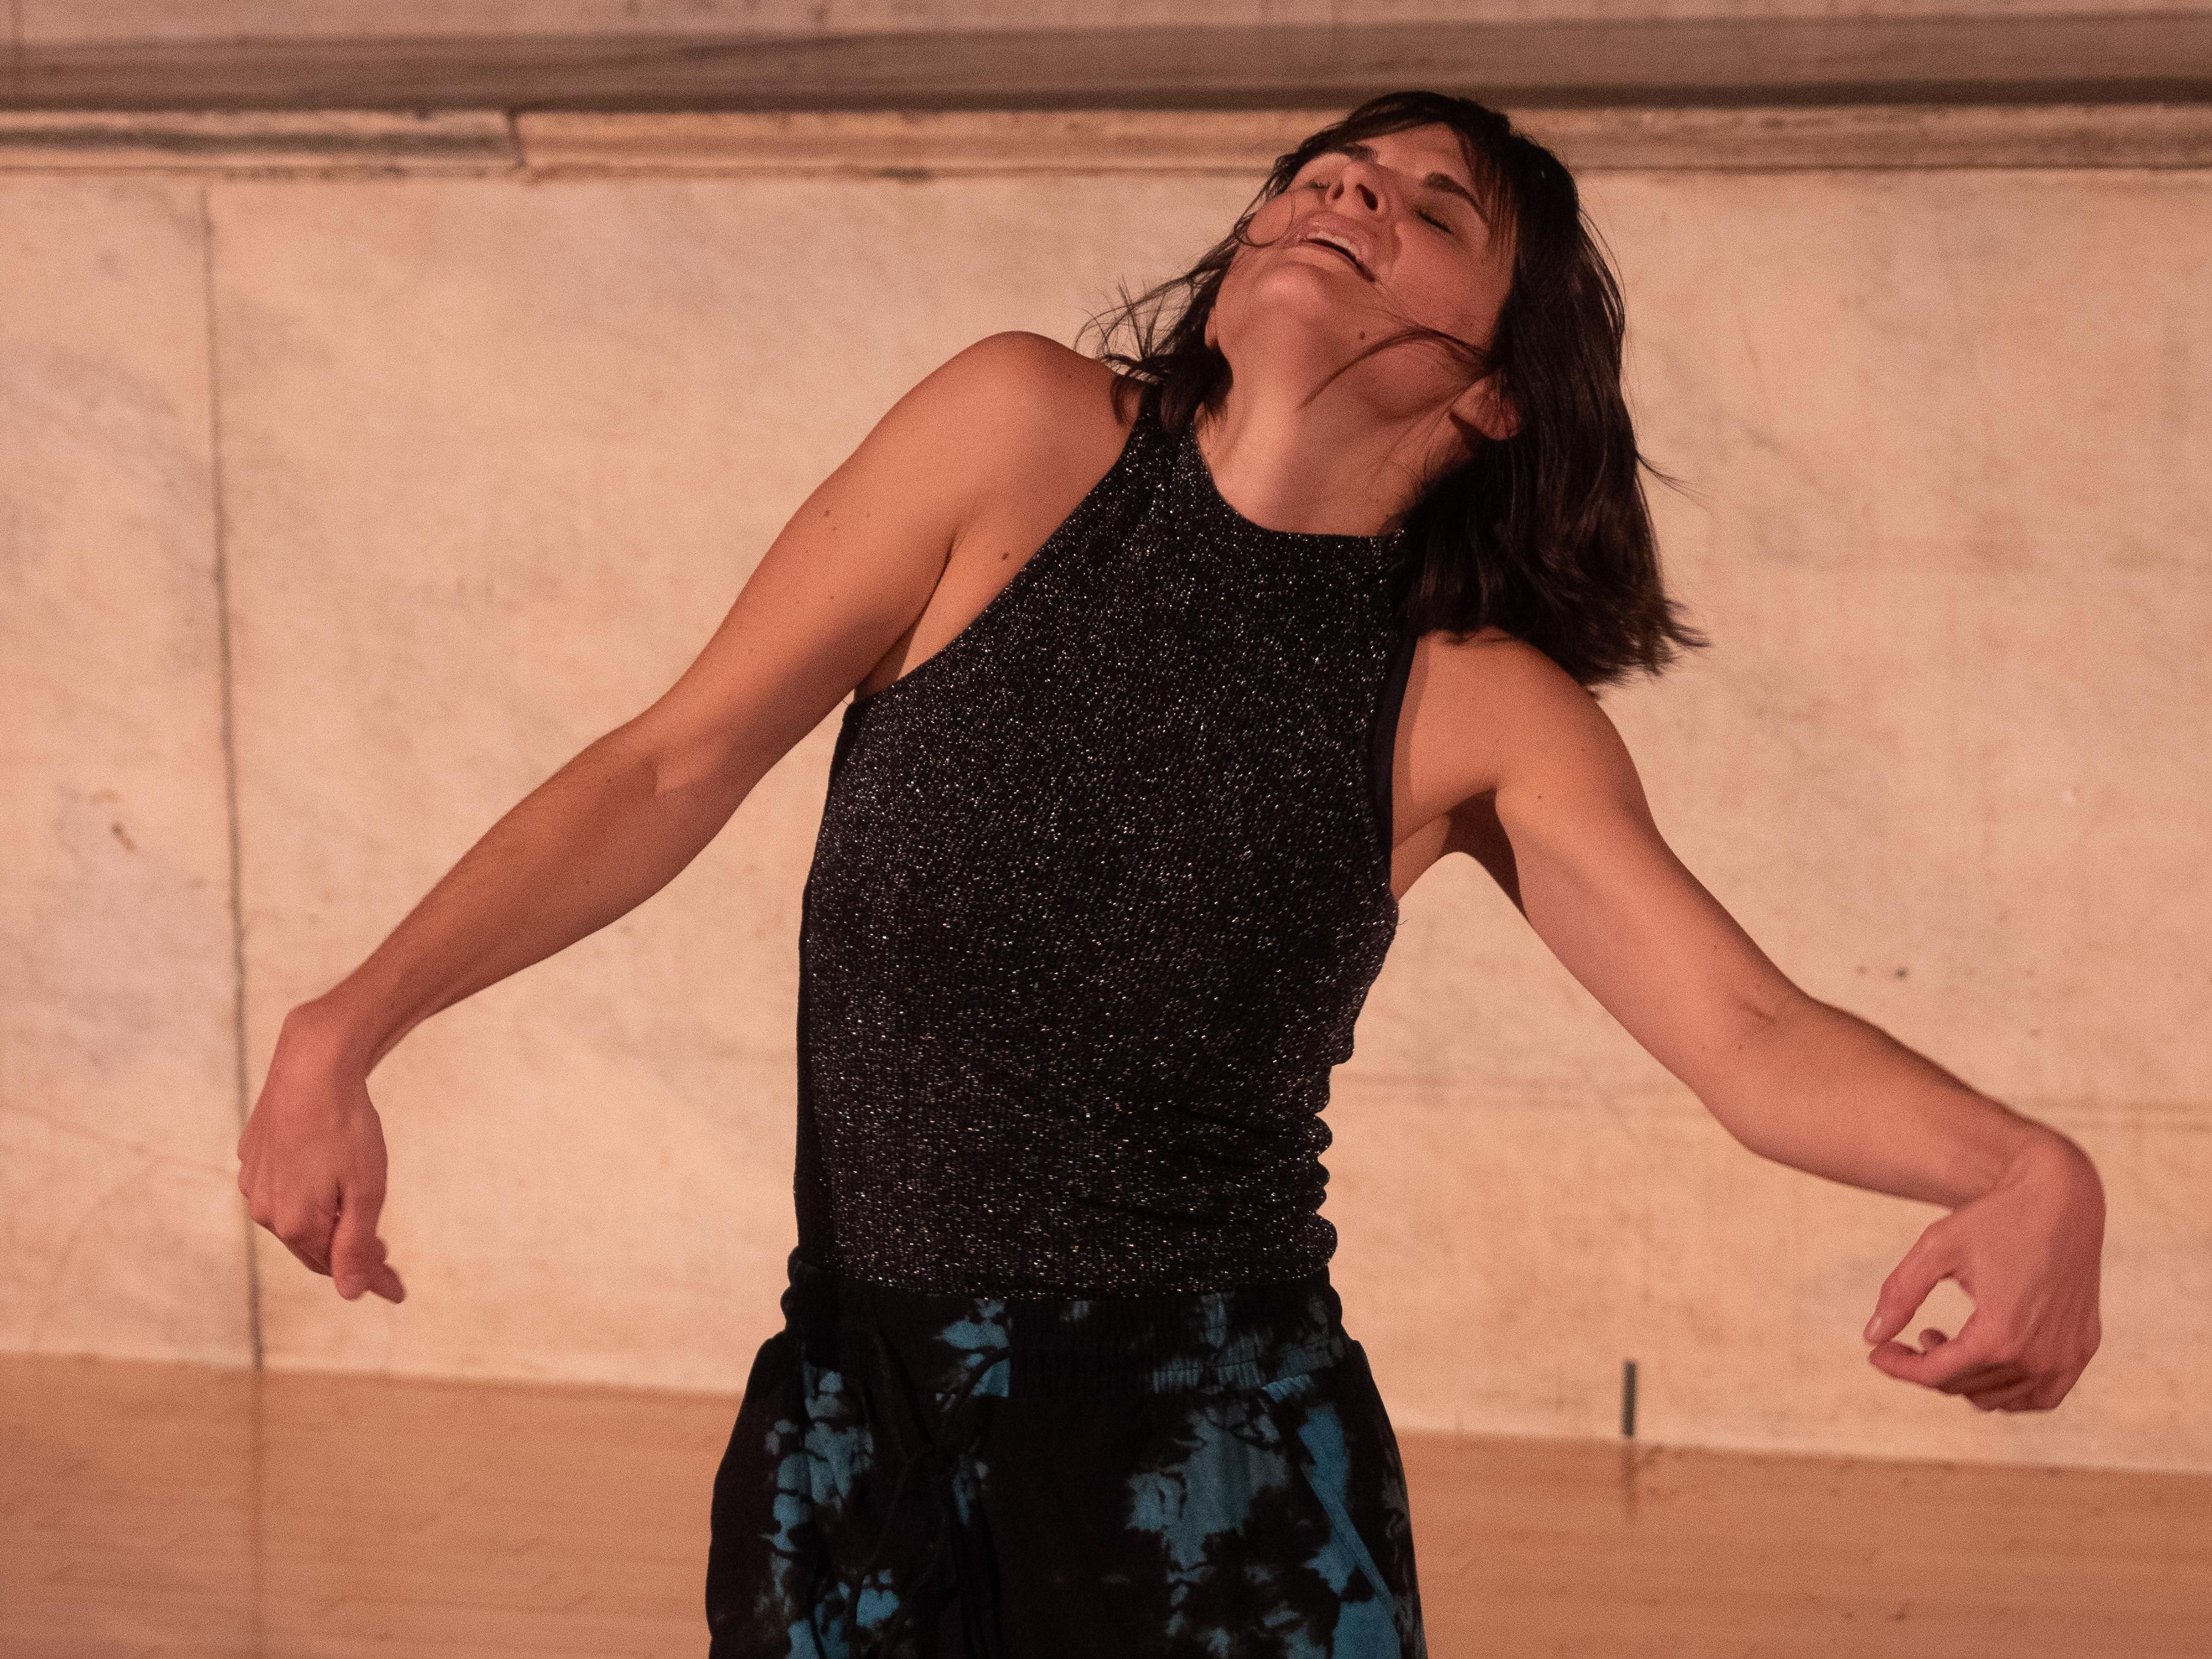 Elisabeth Motley, a white woman with chin-length layered brown hair with bangs, dances in front of a beige marble altar. She wears a form-fitting sleeveless black shirt woven with subtle glitter thread and blousy capri length pants that are tie-dyed teal and black. She faces the camera and her arms are jetting sideways from her body on opposing downward diagonals. Both hands are loosely clenched in inwardly rotated fists. Her right shoulder is higher than her left and her head is thrown backwards on the upstage right diagonal. Her eyes are closed, mouth slightly open, strands of hair cling to her face. The image cuts off at mid-thigh.